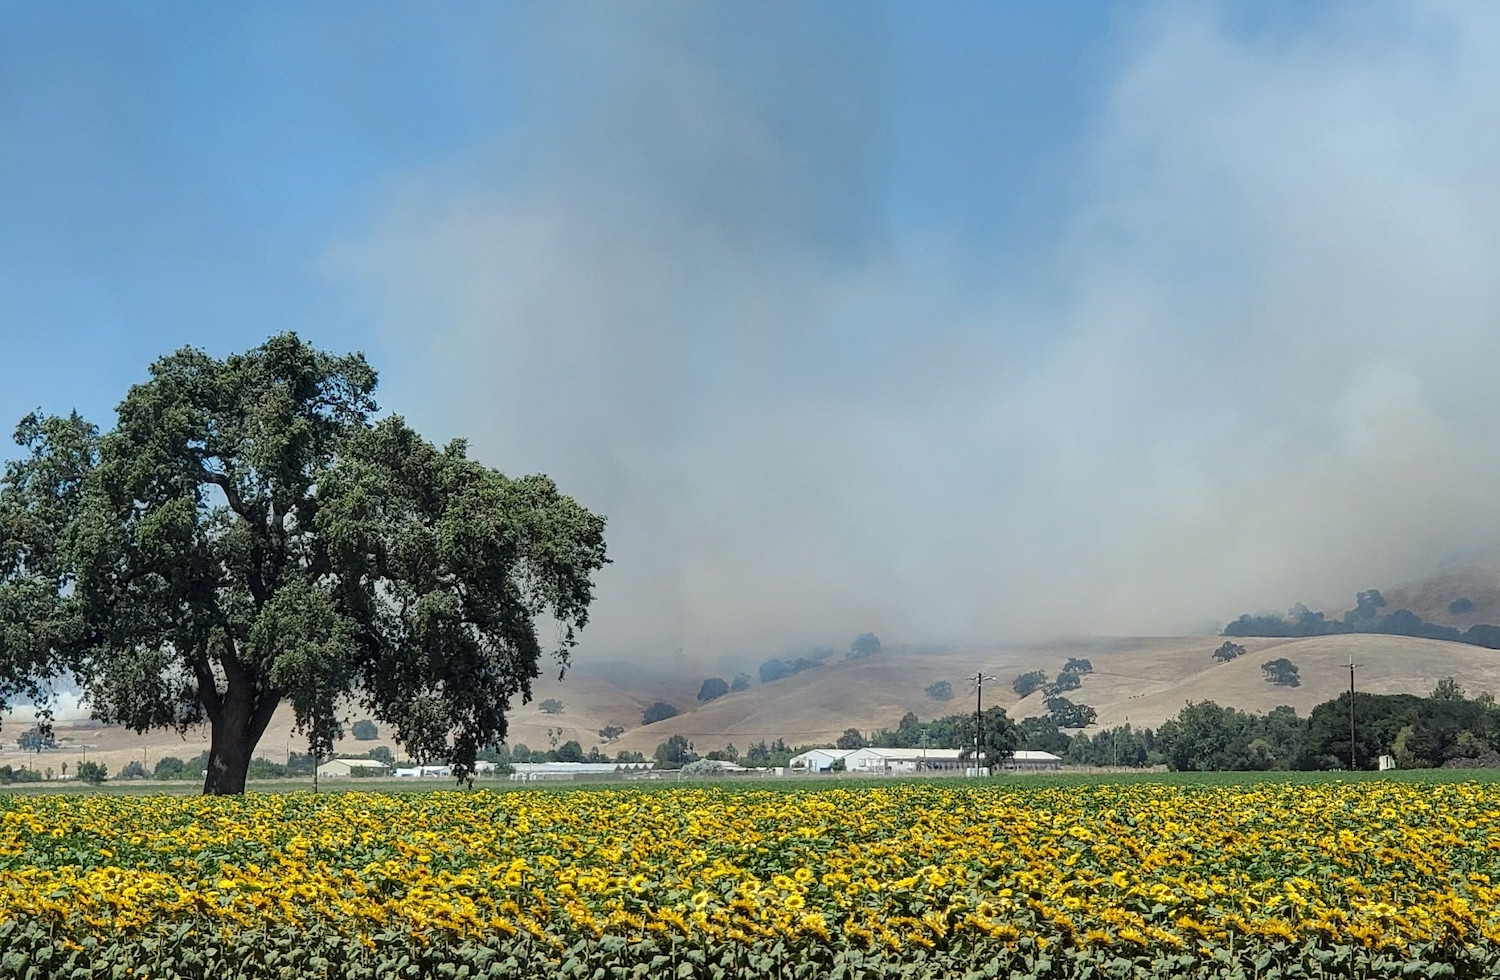 smoke from a fire in the foothills. in the foreground are sunflowers and a tree